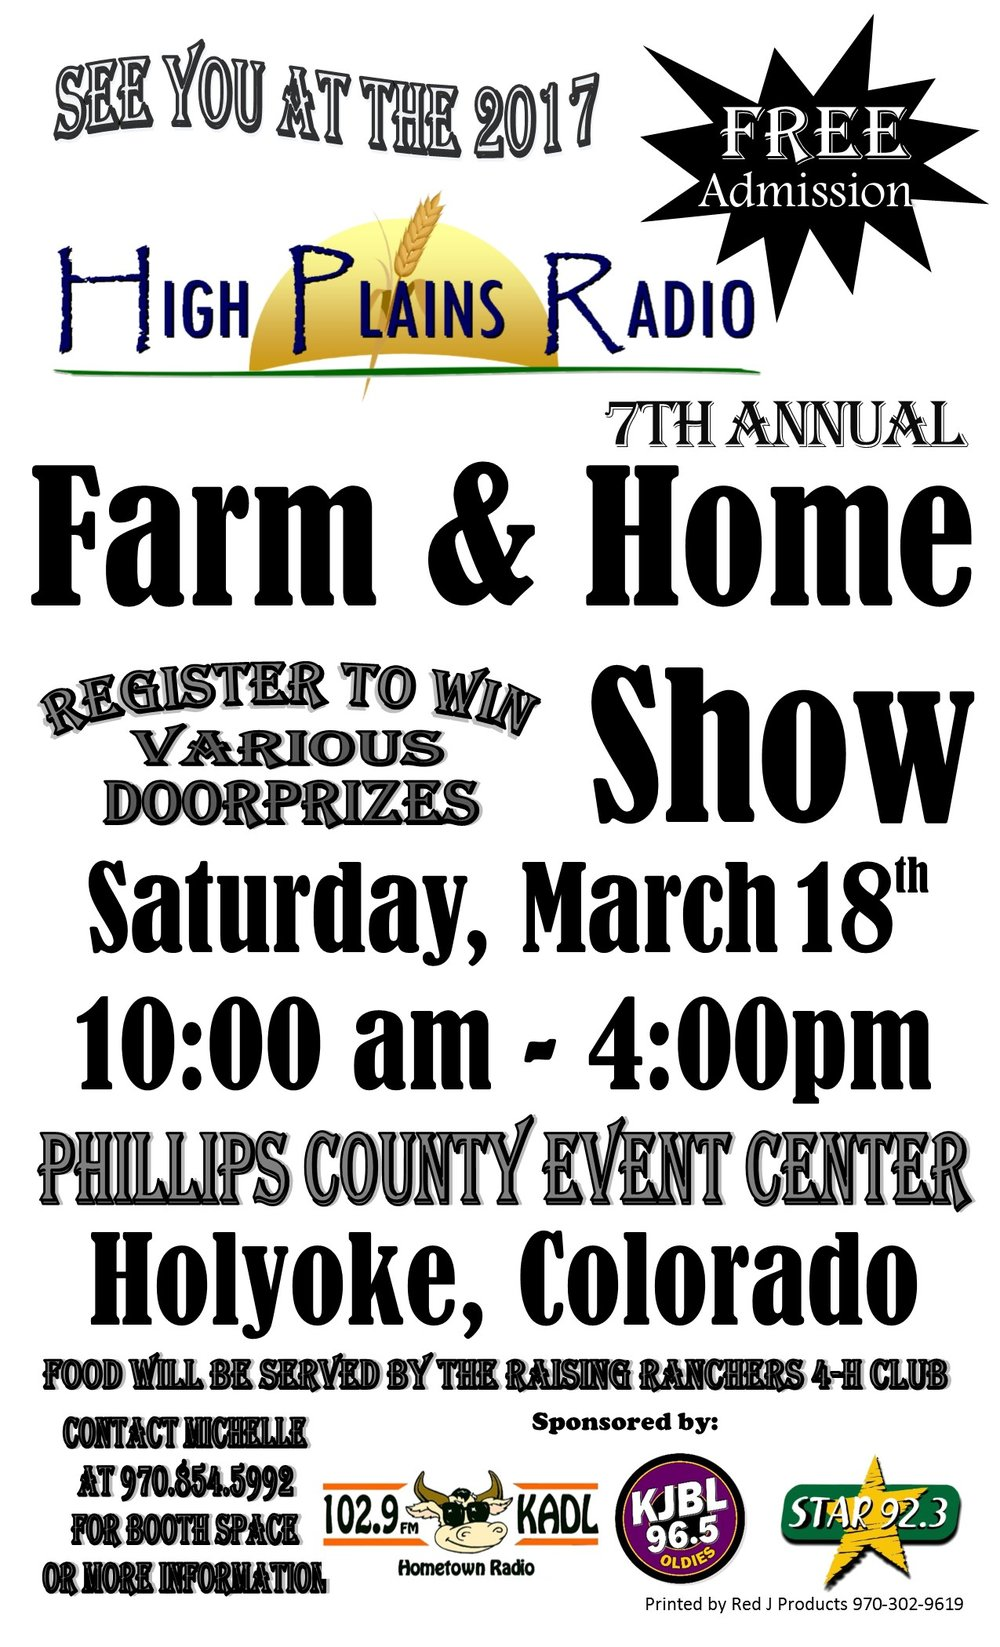 Farm and Home Show in Holyoke Colorado